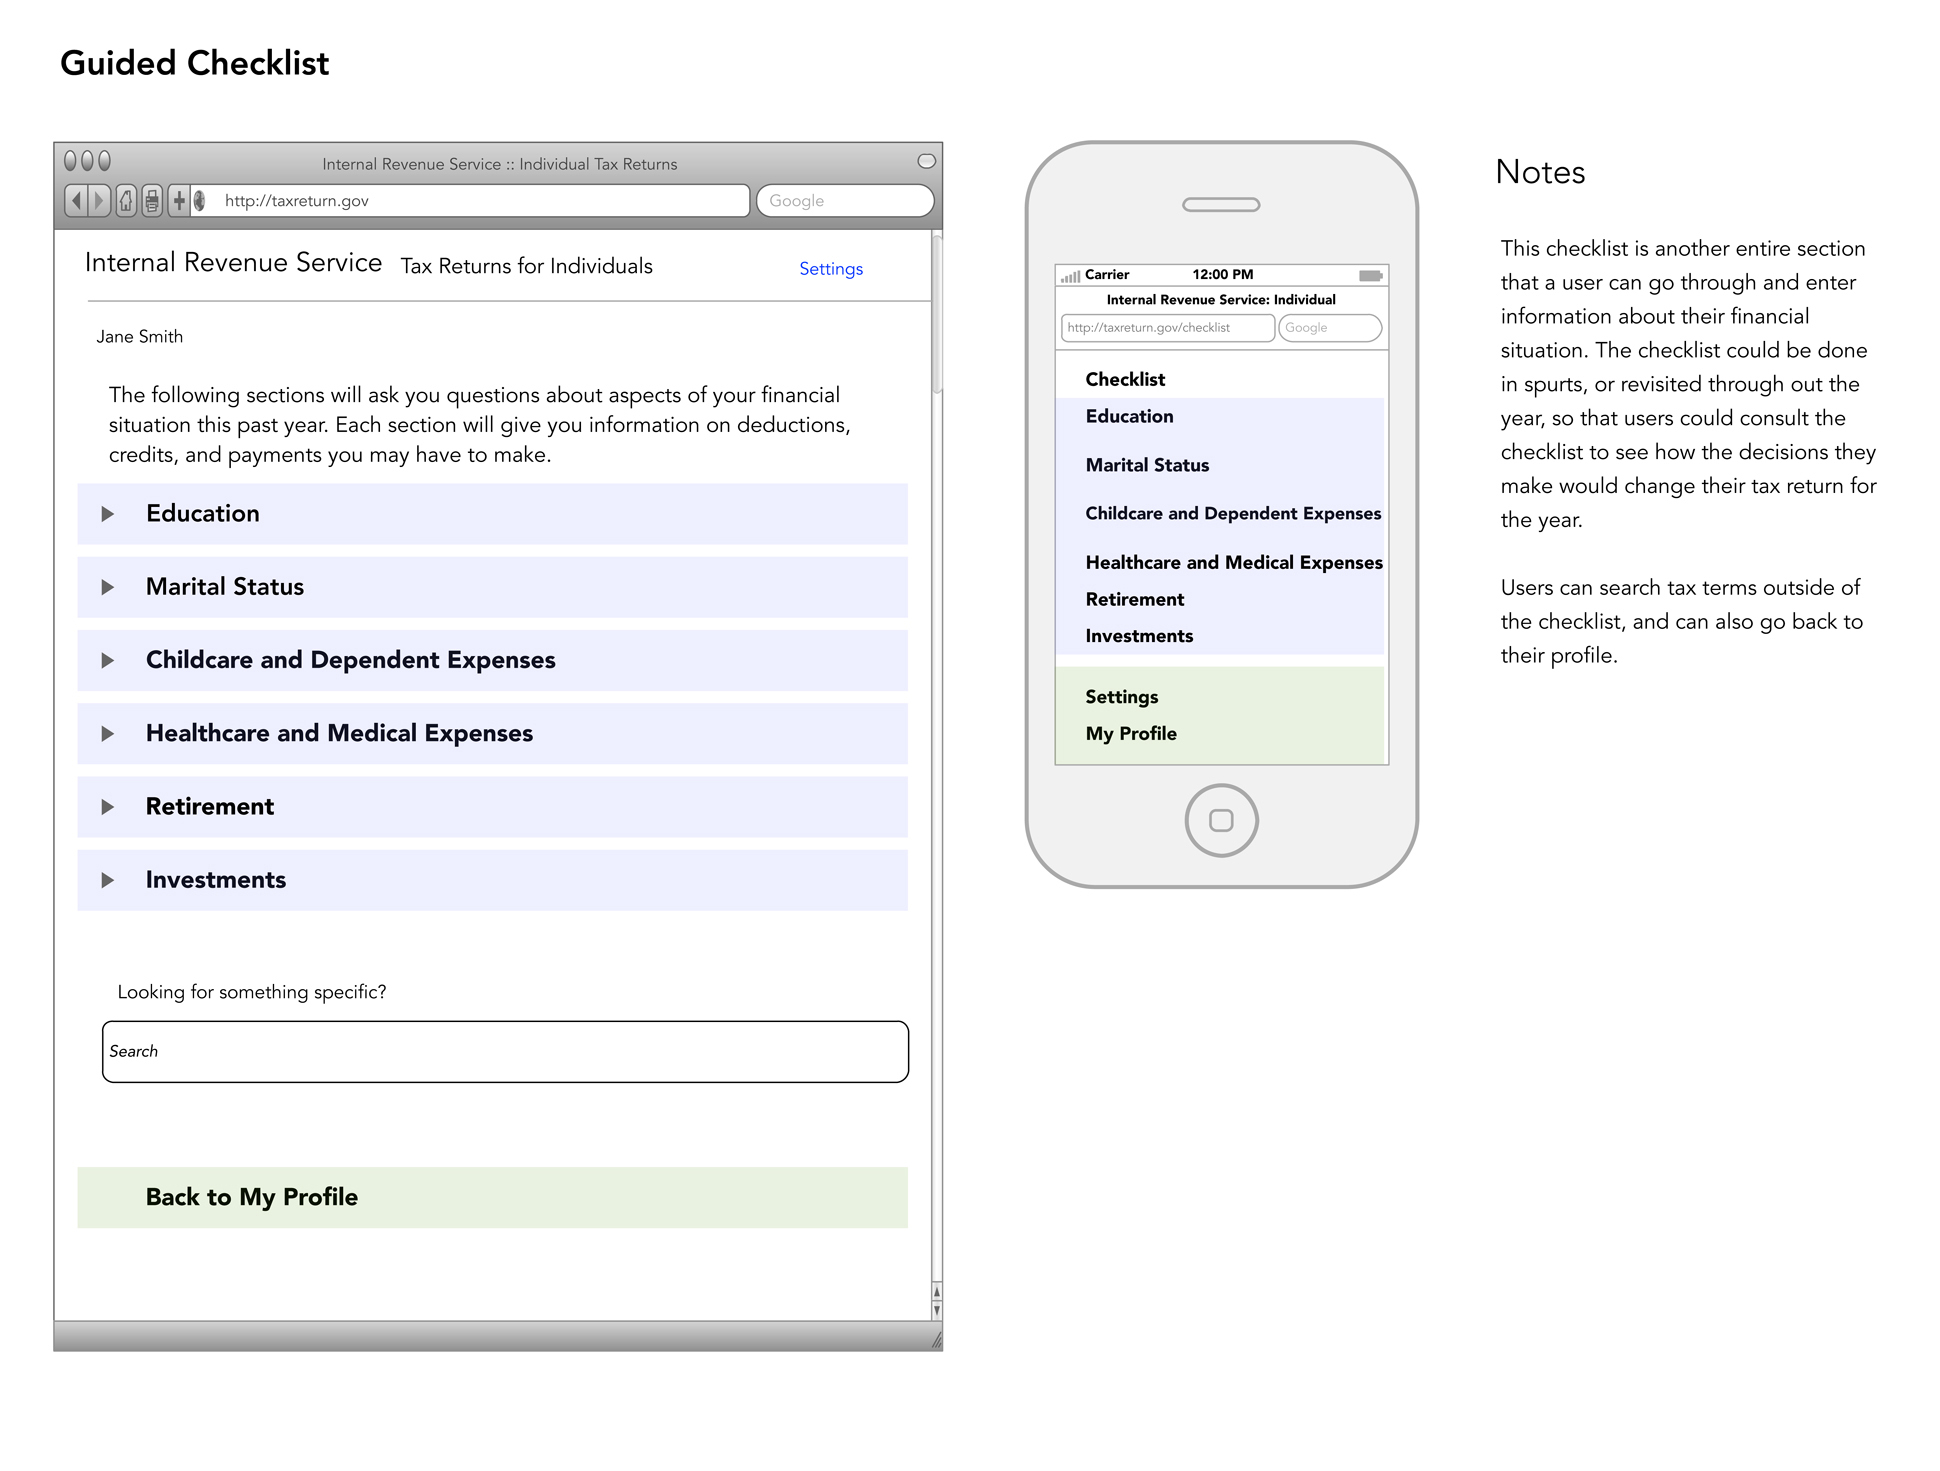 A page from a tax design challenge submission. A guided checklist is shown for both the desktop and mobile view.